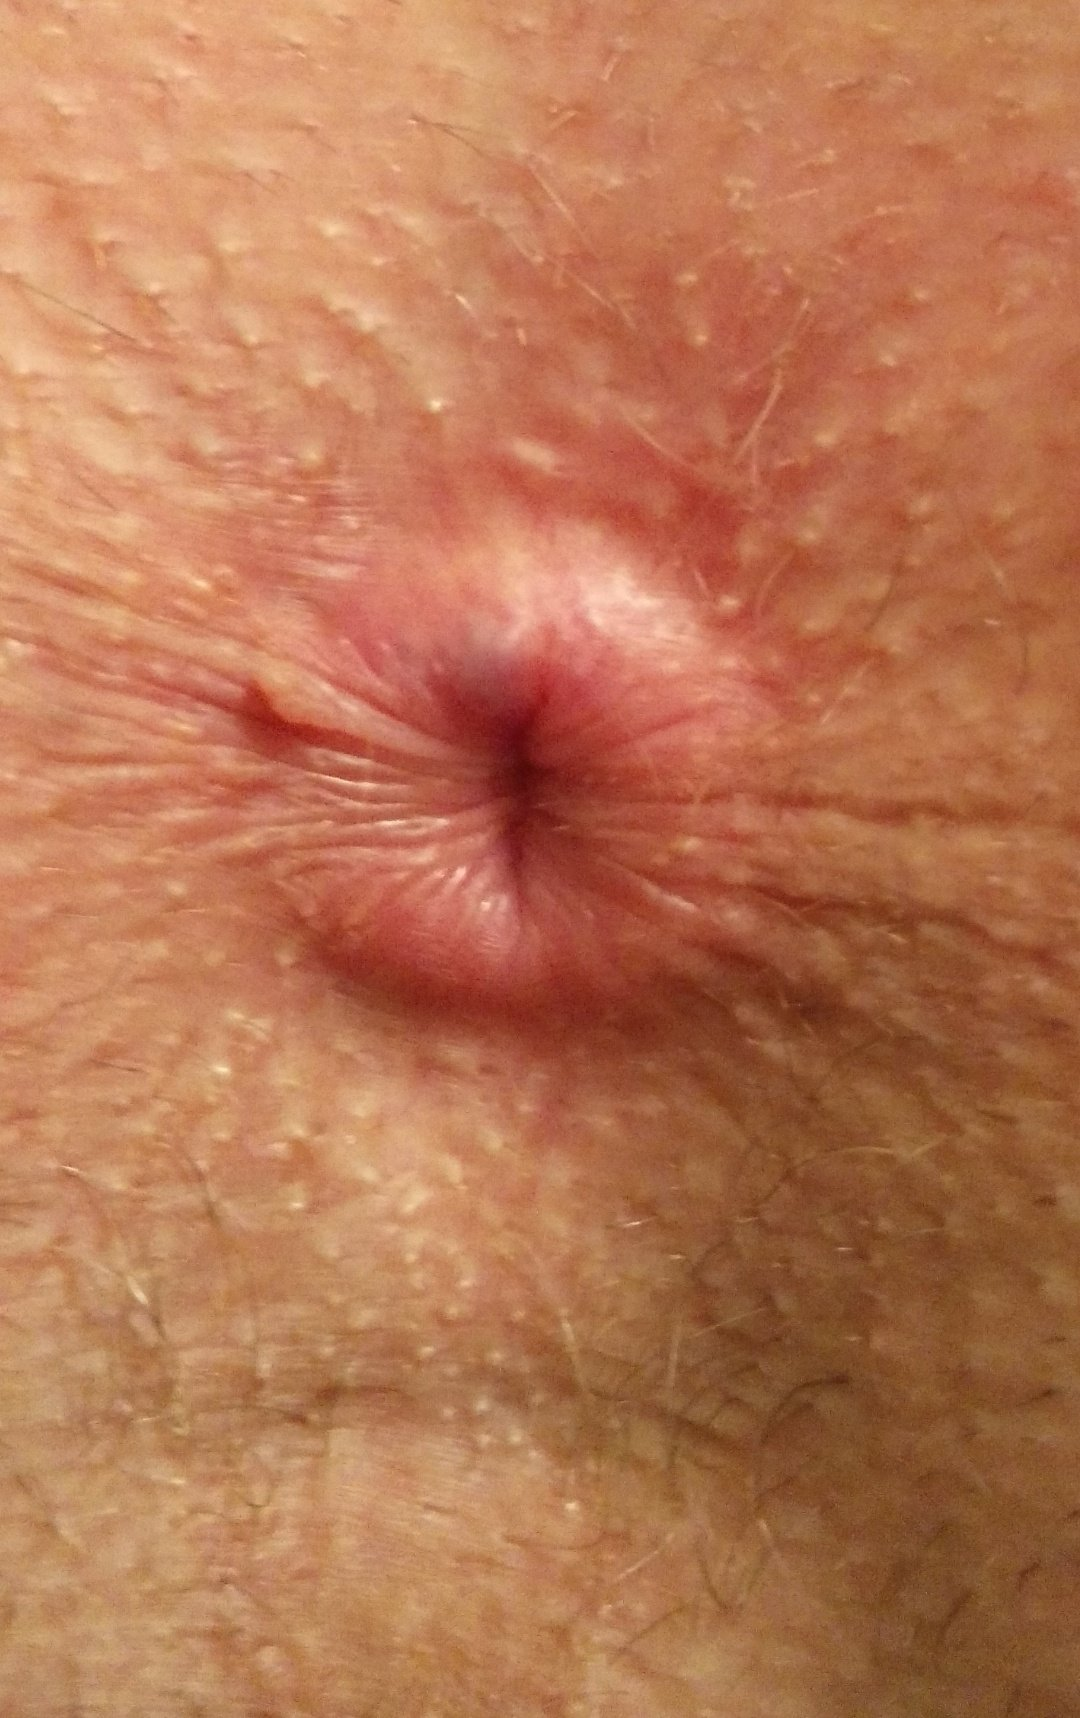 Mature indon herpes around anus fit